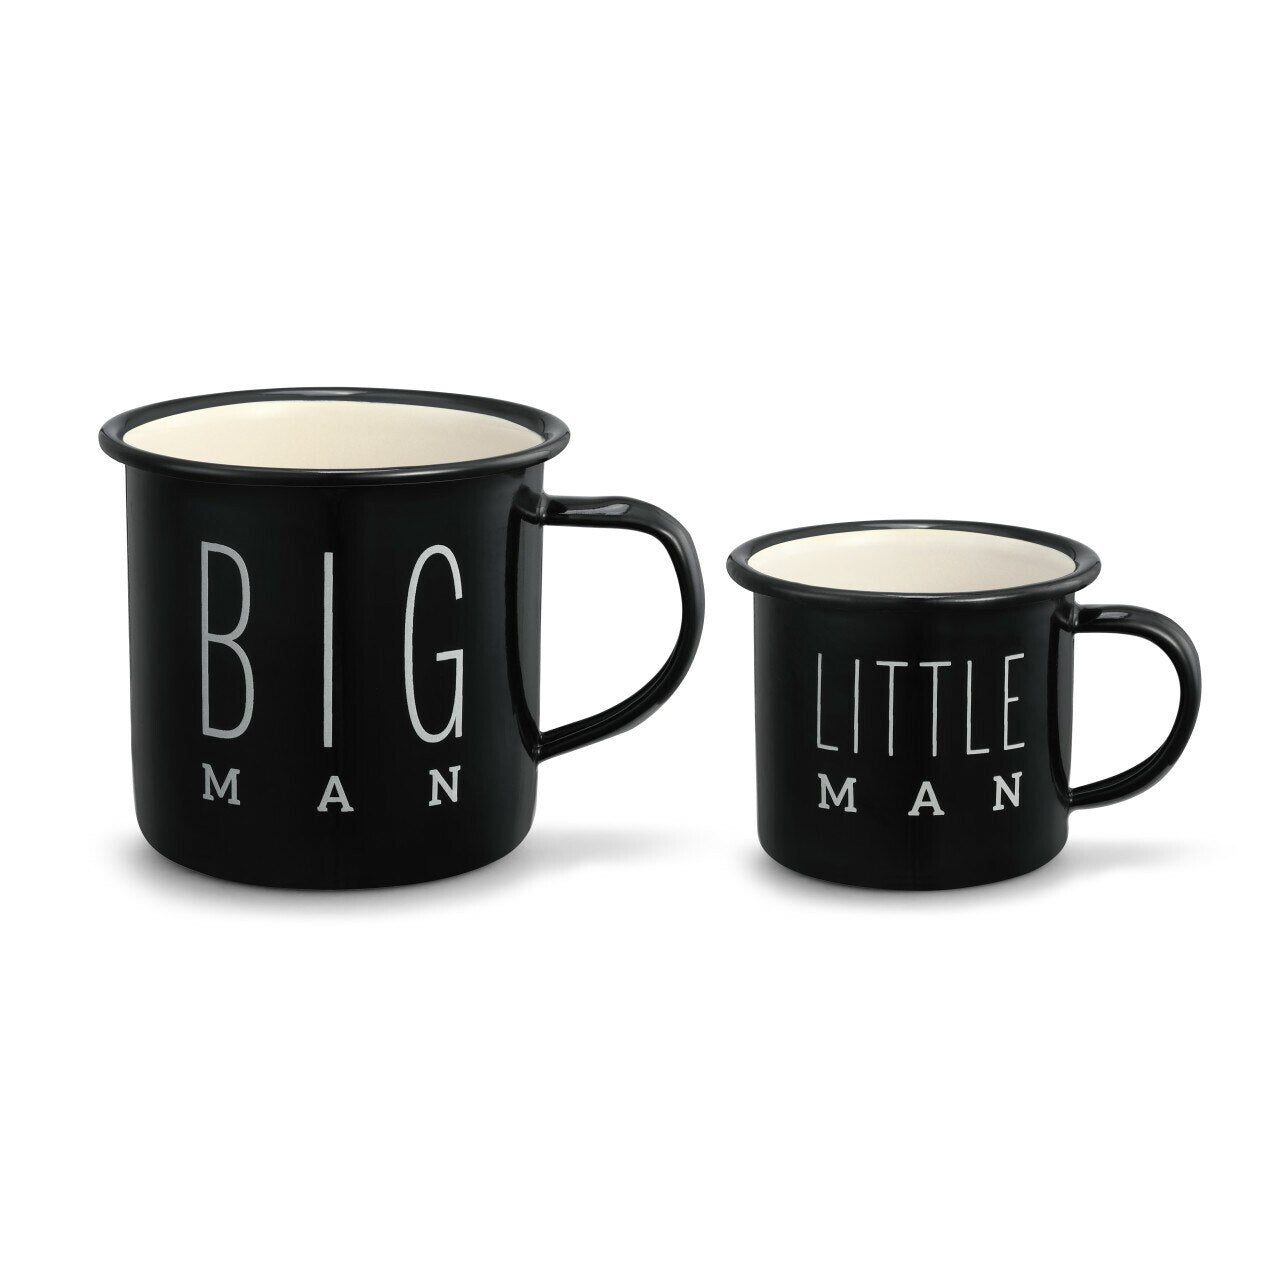 Big Man & Little Man Camper Mug Set